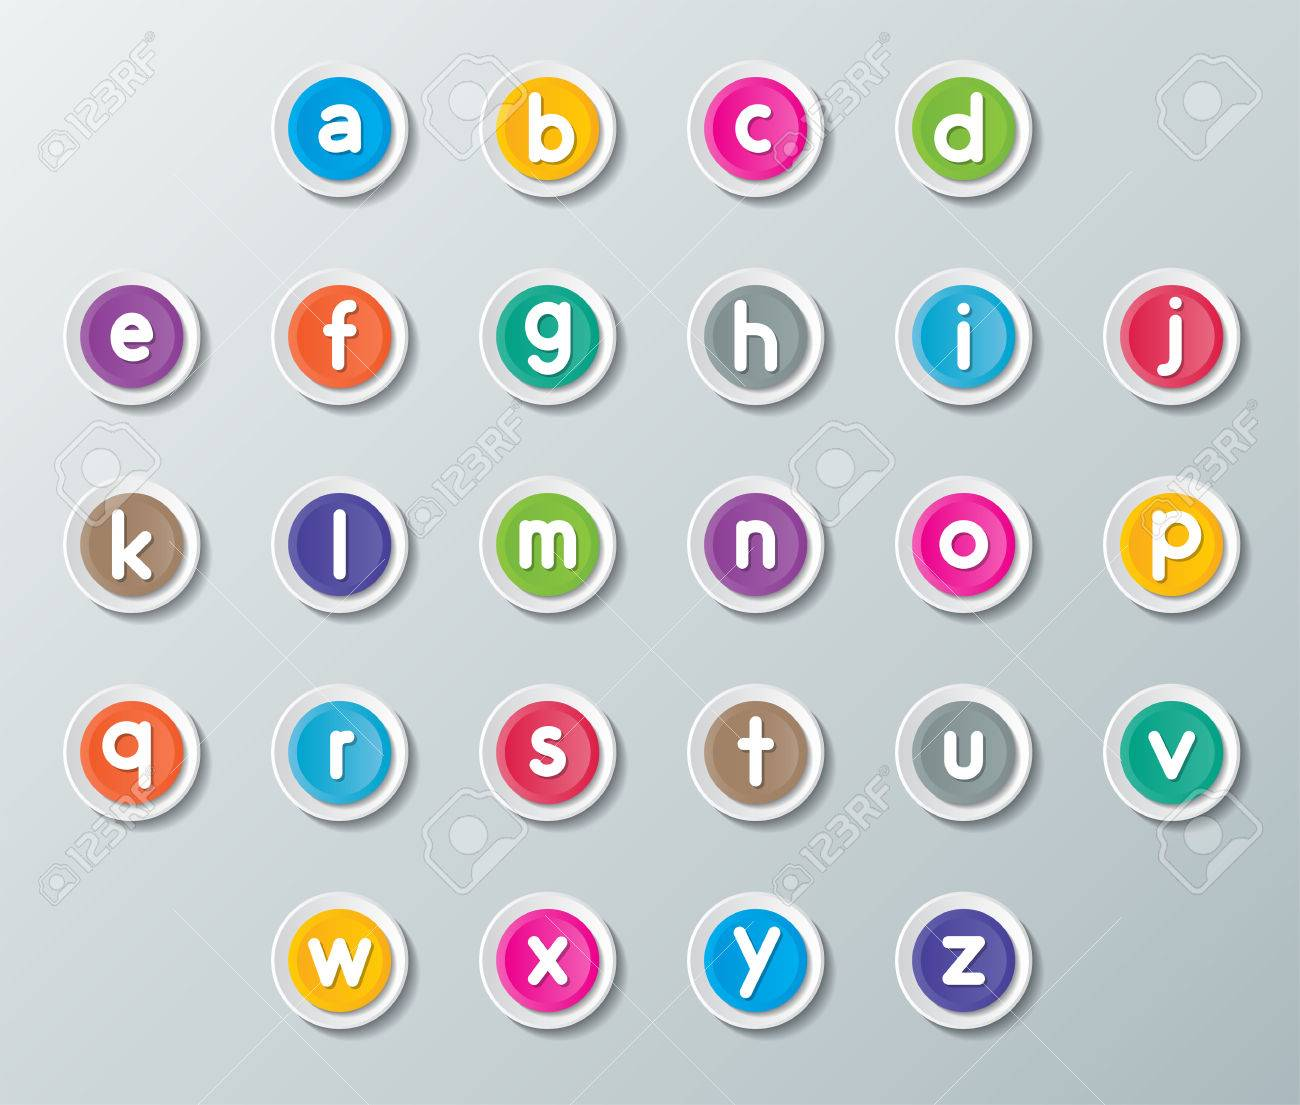 small letters A to Z on colorful paper buttons